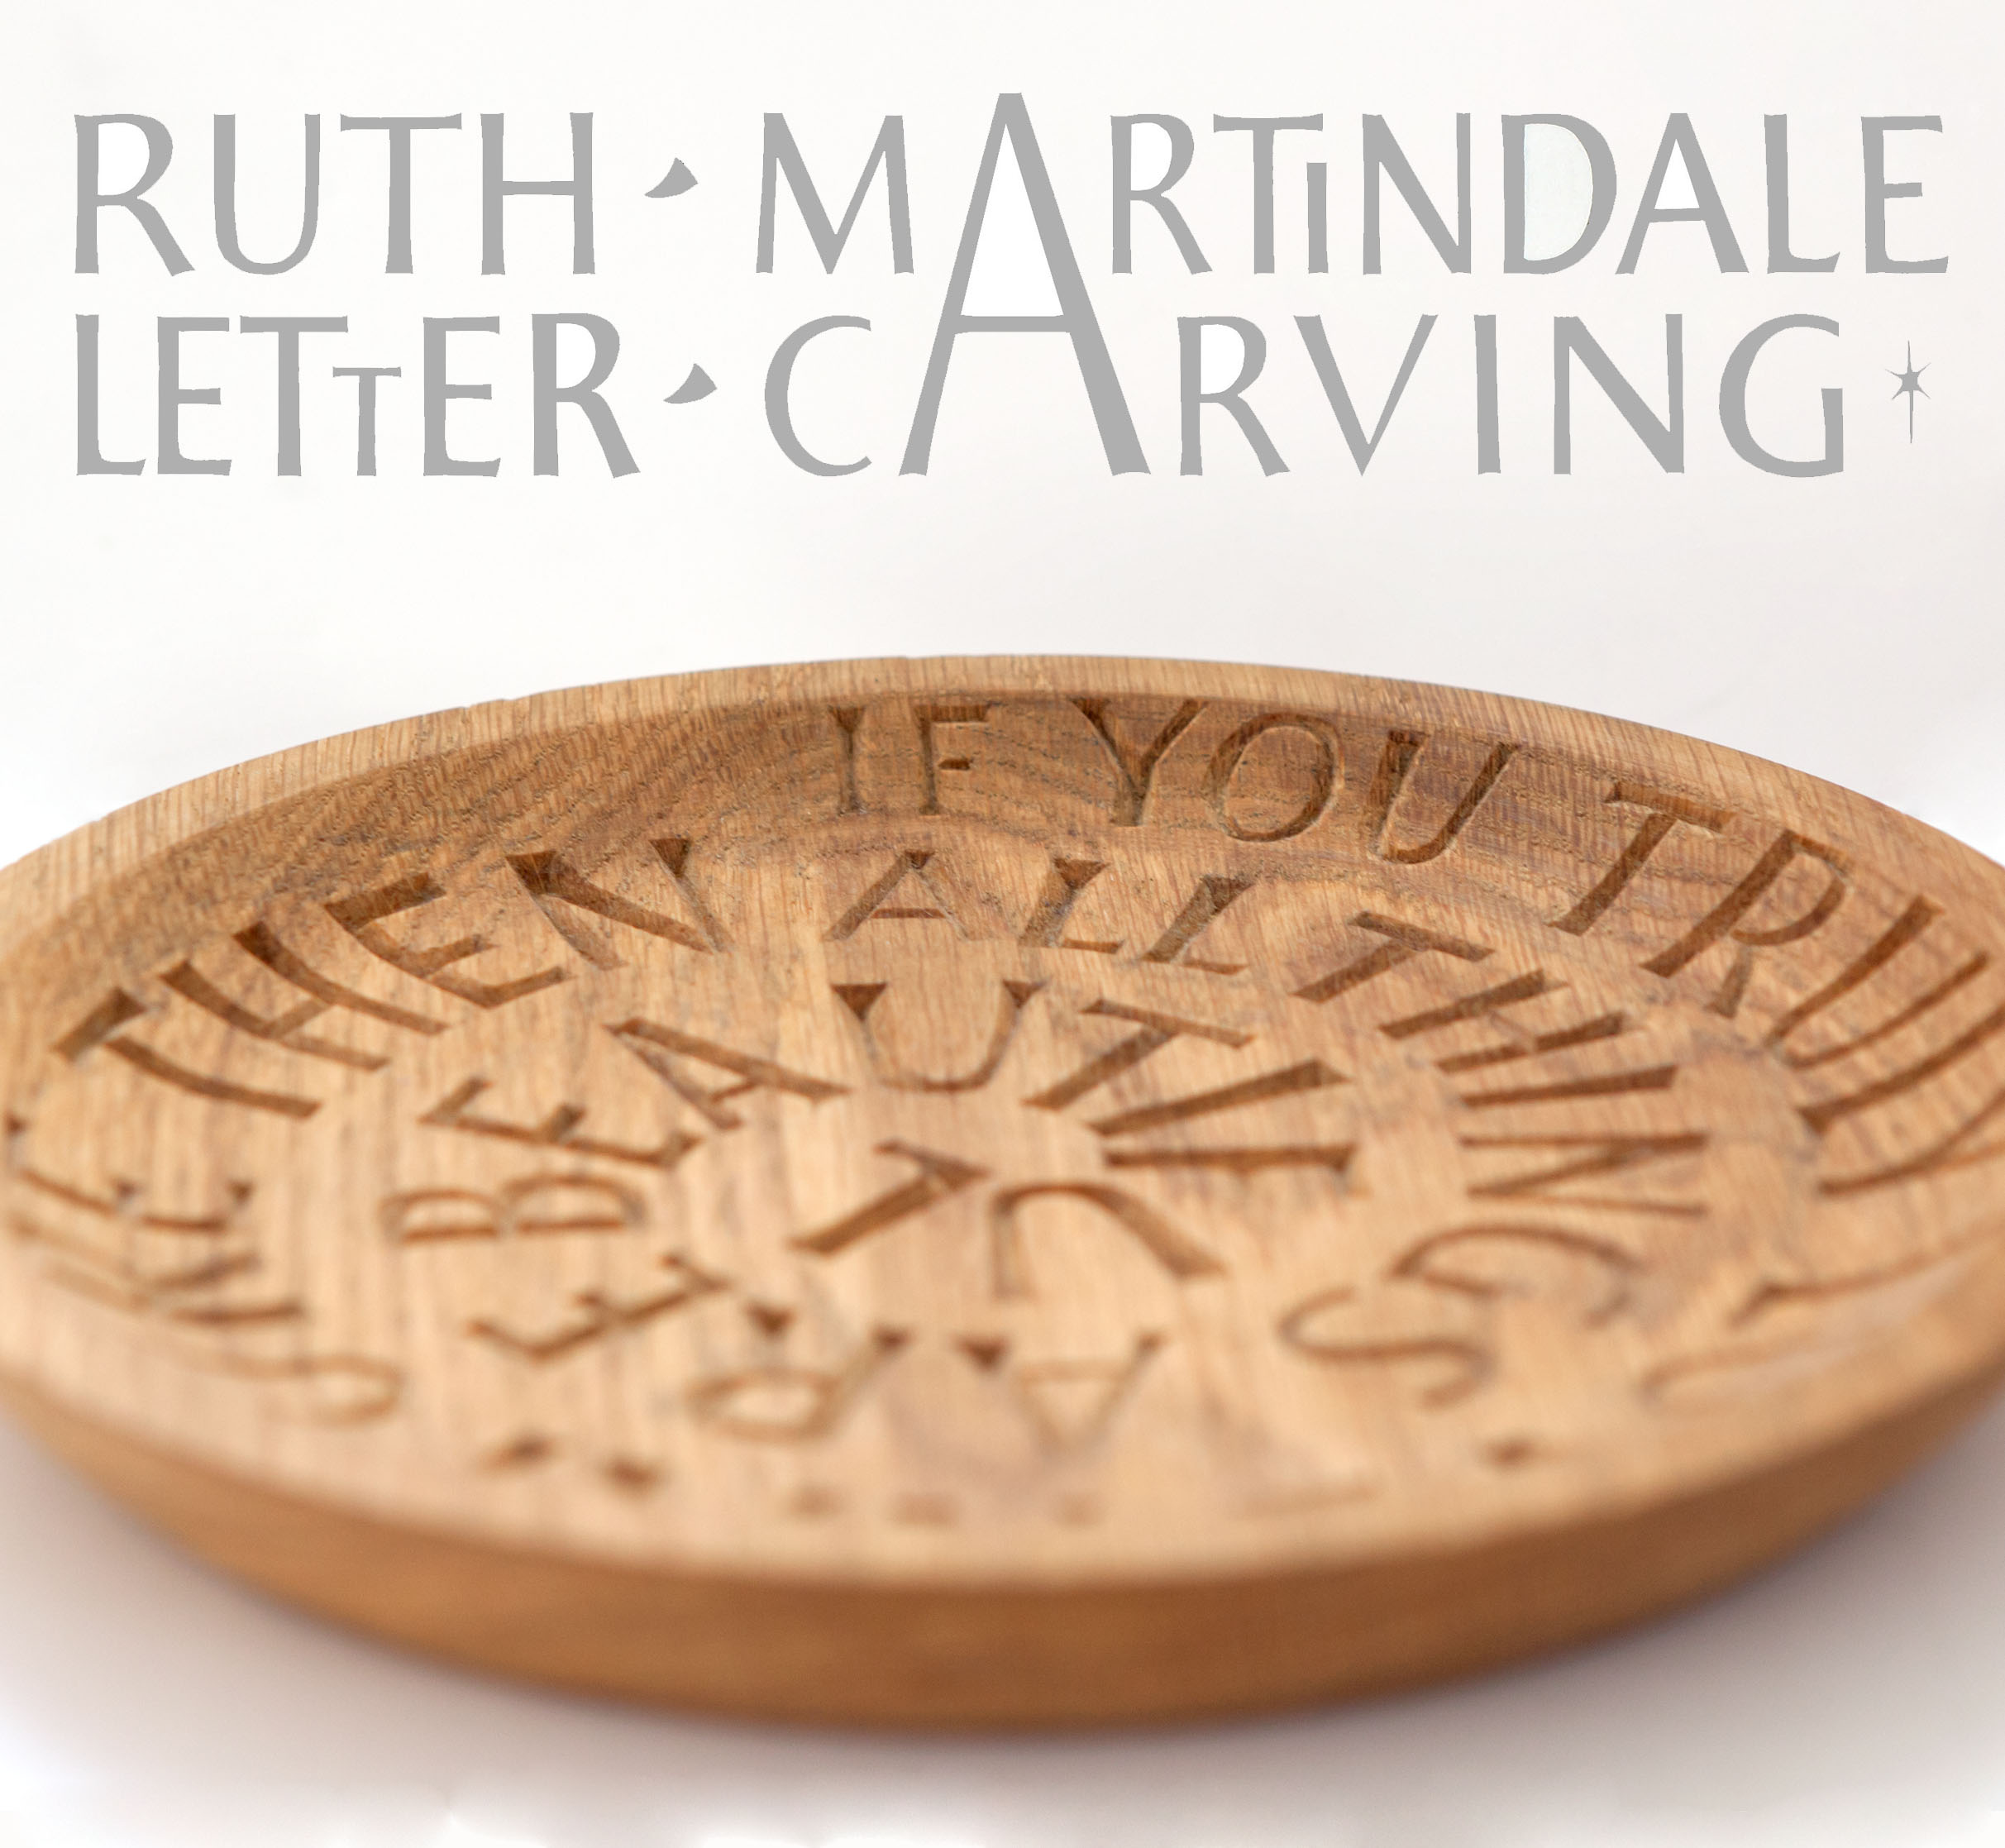 Ruth Letter Carving